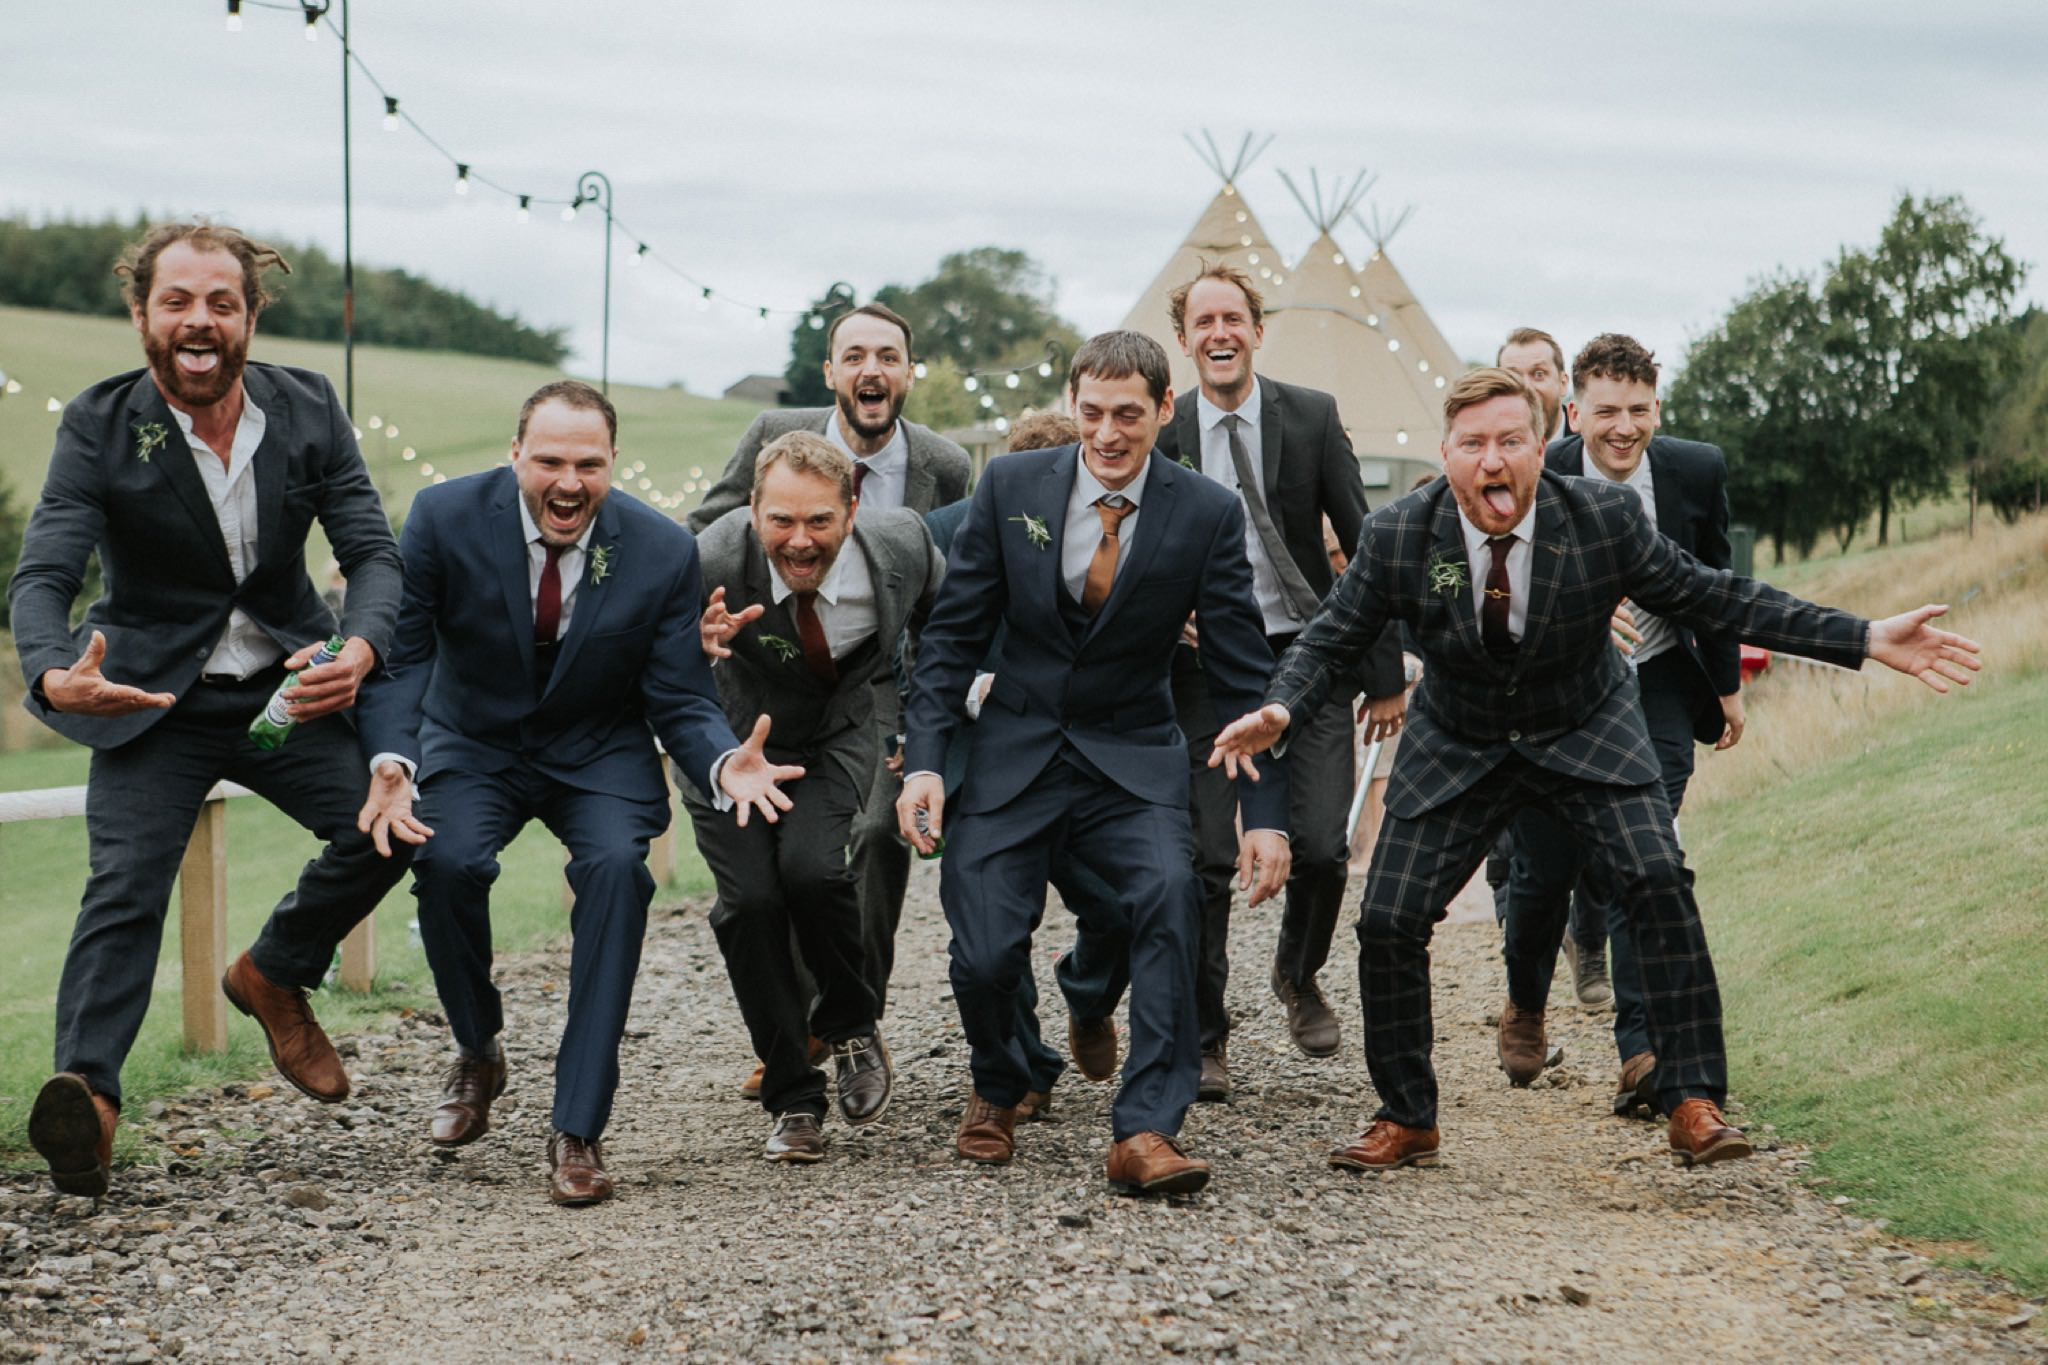 funny image of wedding ushers doing a haka dance hadsham farm oxfordshire